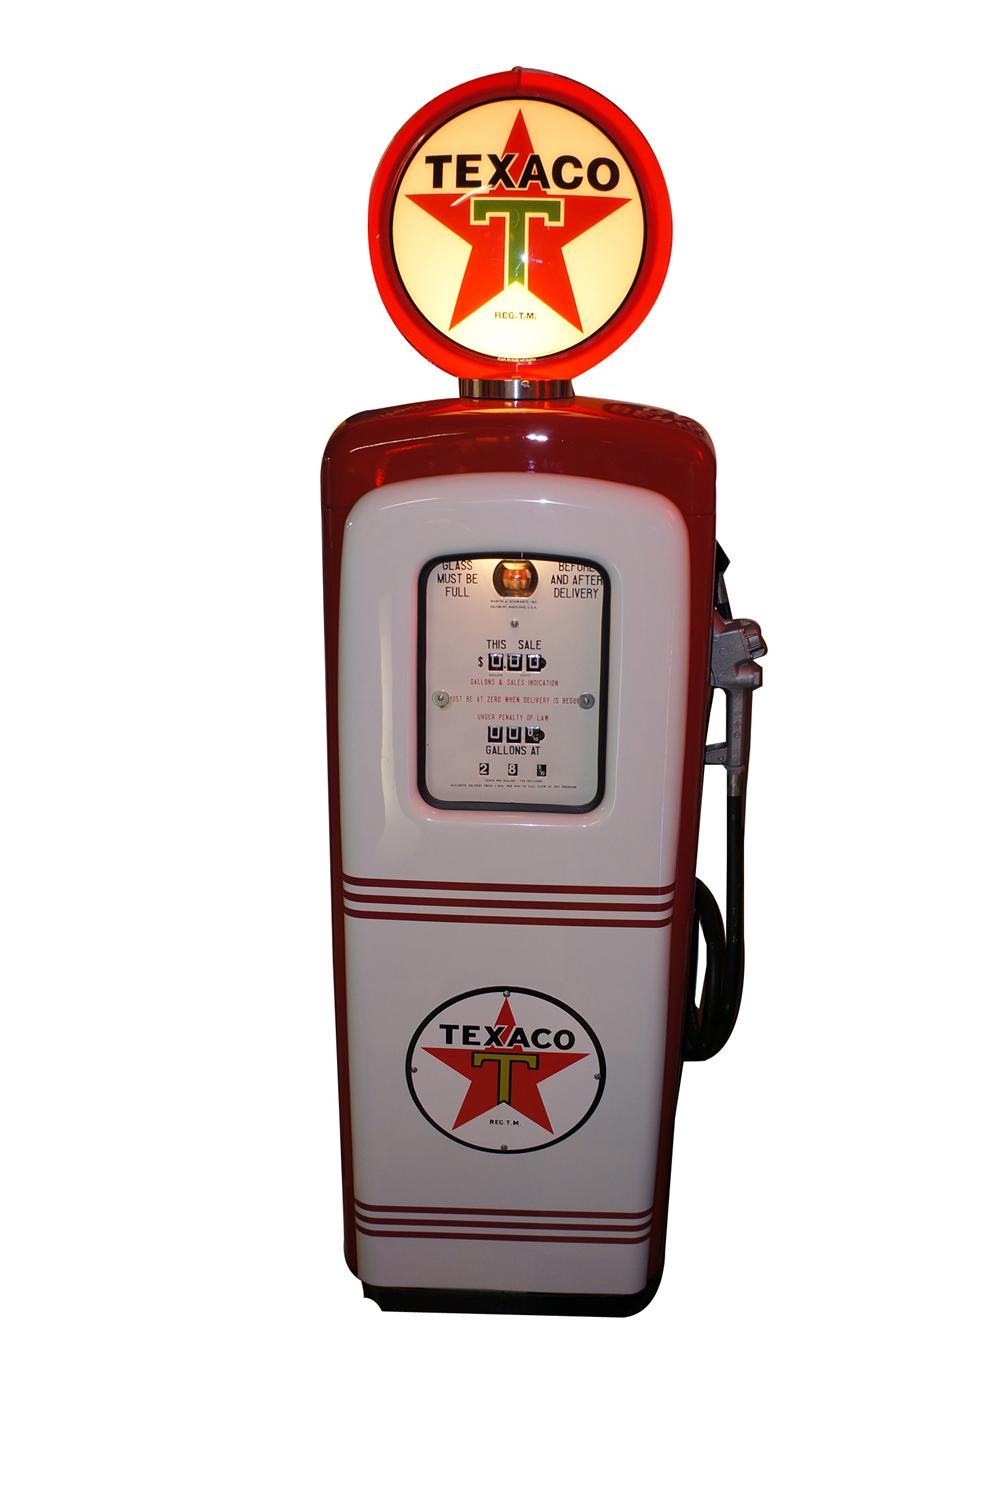 Good looking 1948 Texaco Oil M/S 80 restored service station gas pump. - Front 3/4 - 139524